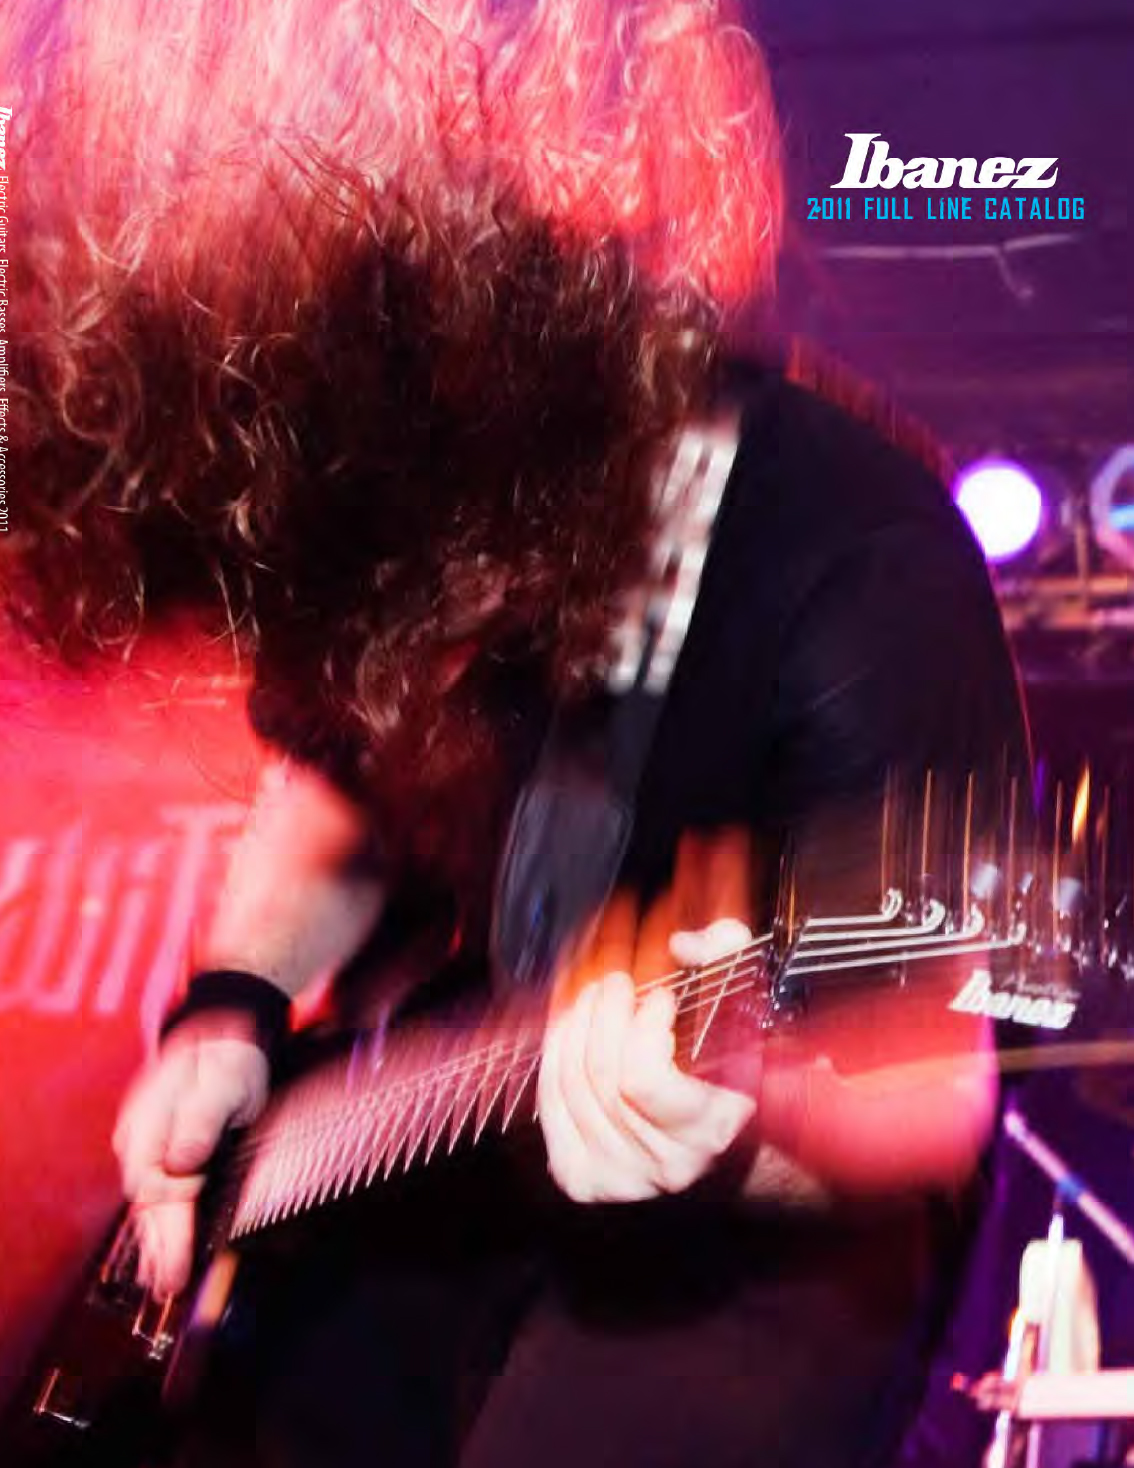 Ibanez Catalog 2011 Japan